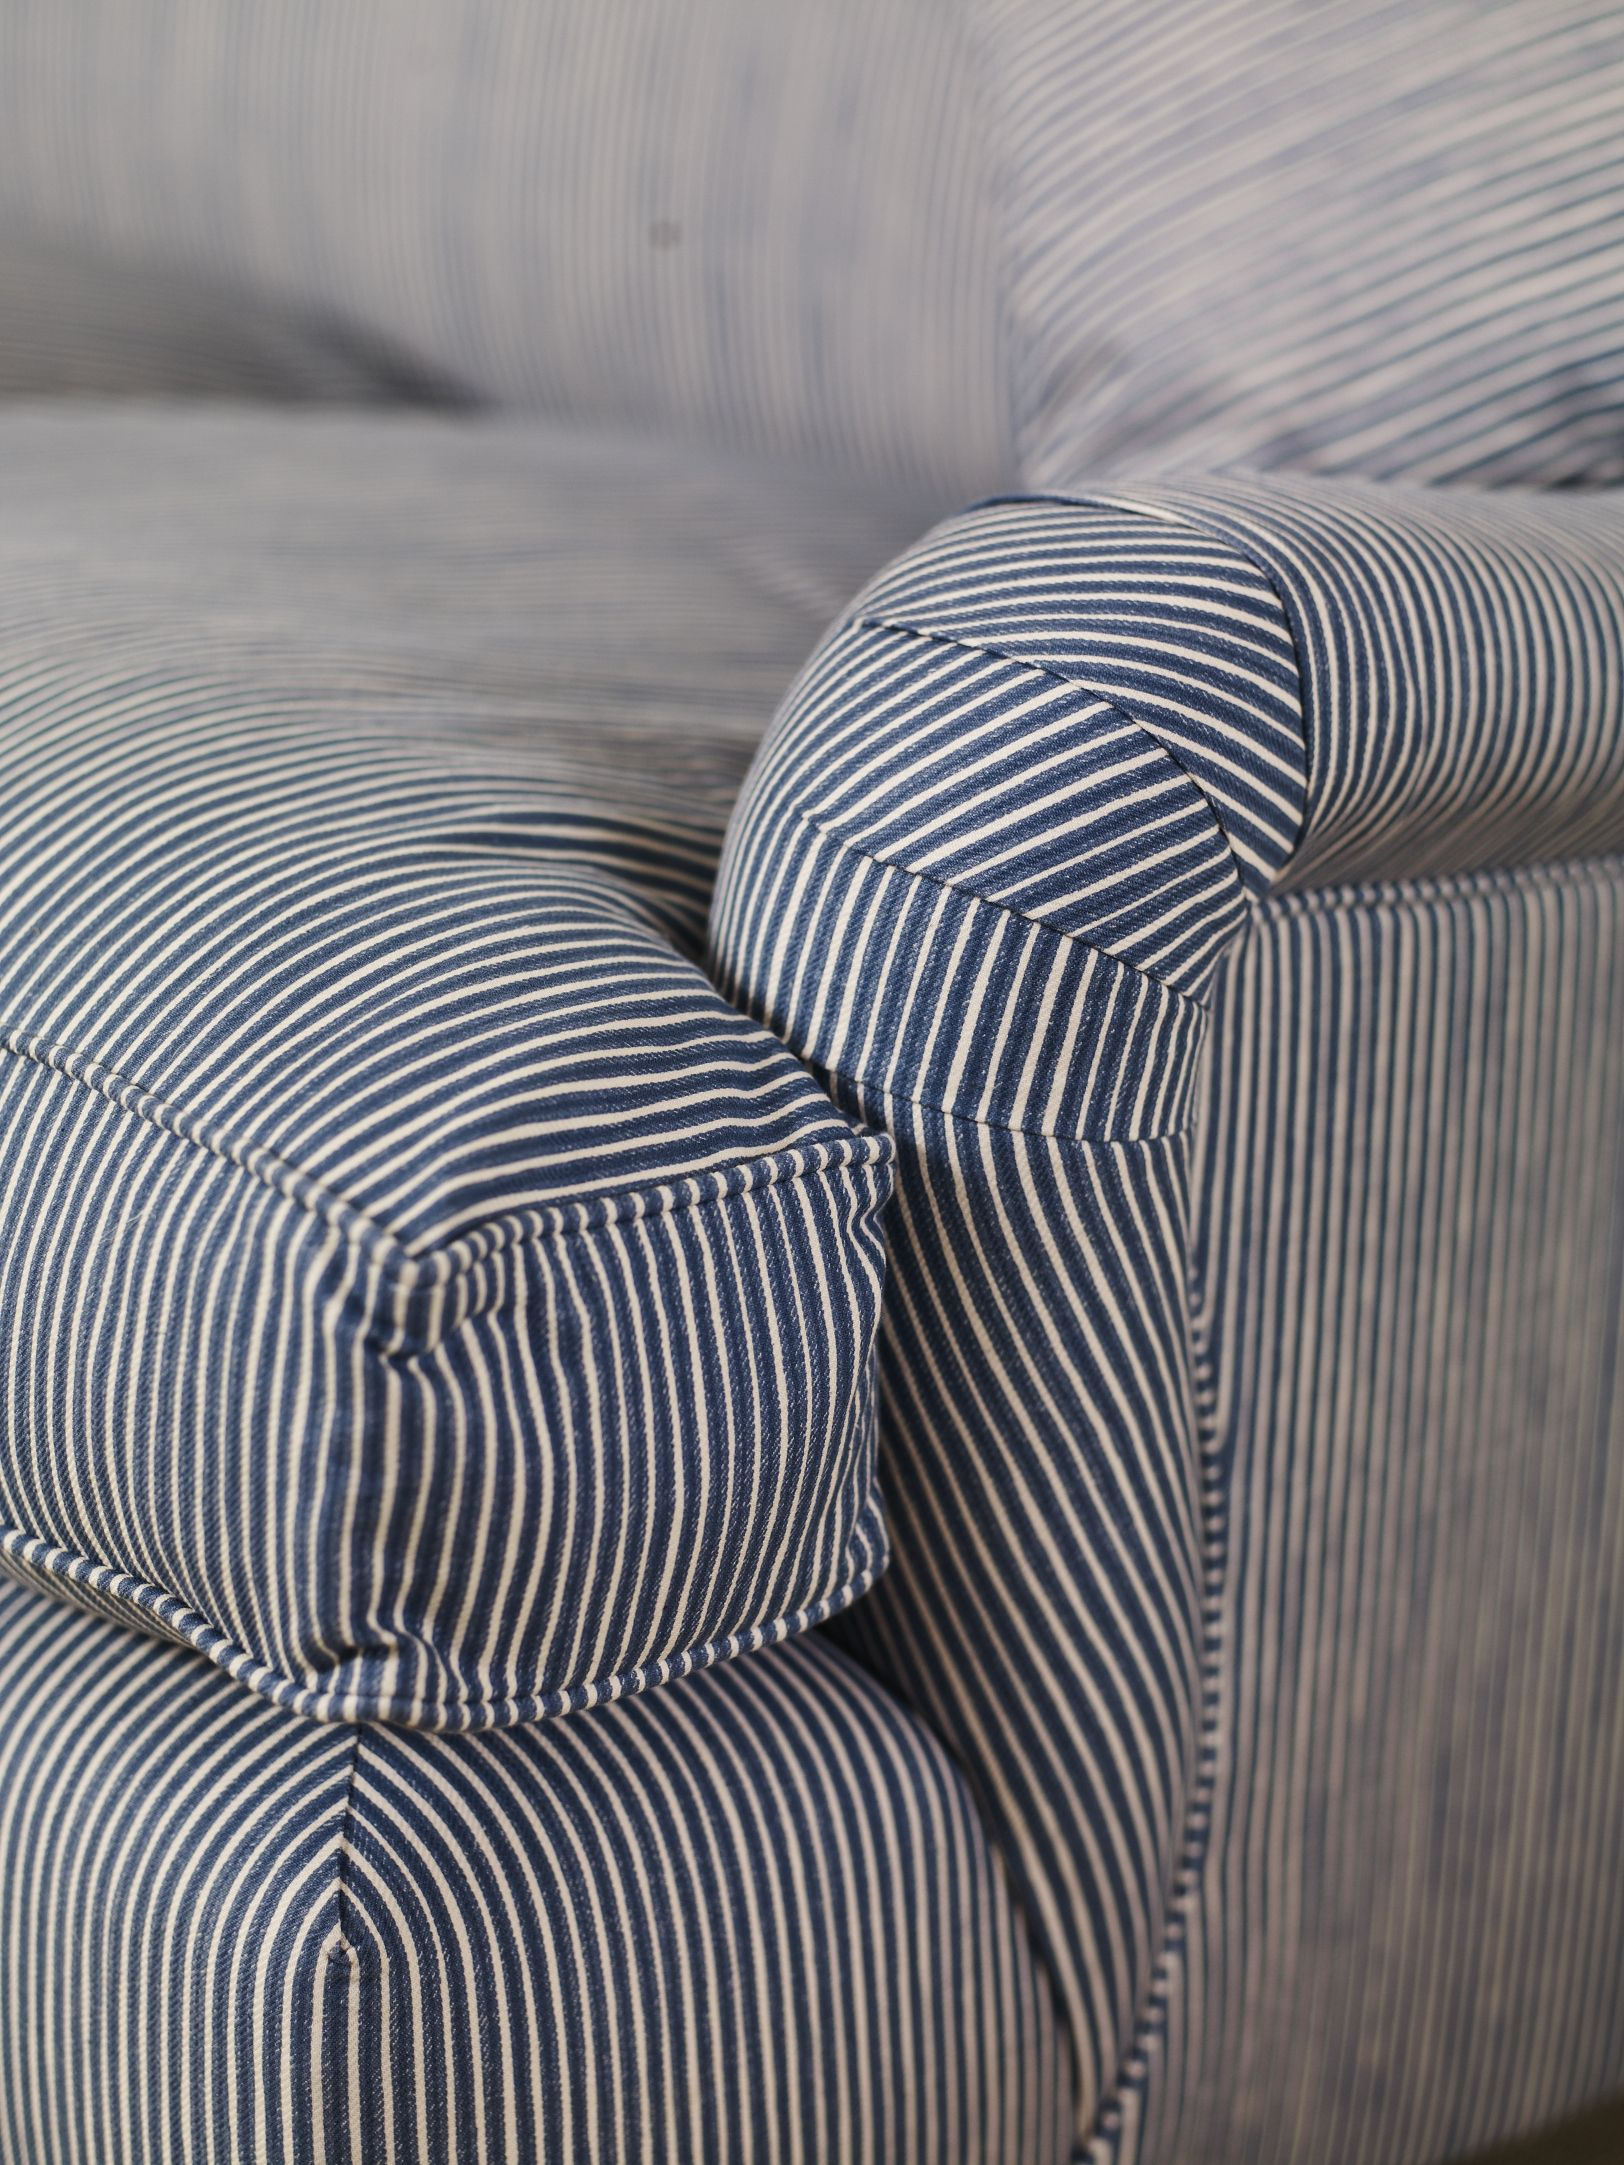 Blue Stripe Roll Arm … | Our New English Cottage | Pinterest Inside Bailey Roll Arm Skirted Swivel Gliders (View 16 of 25)